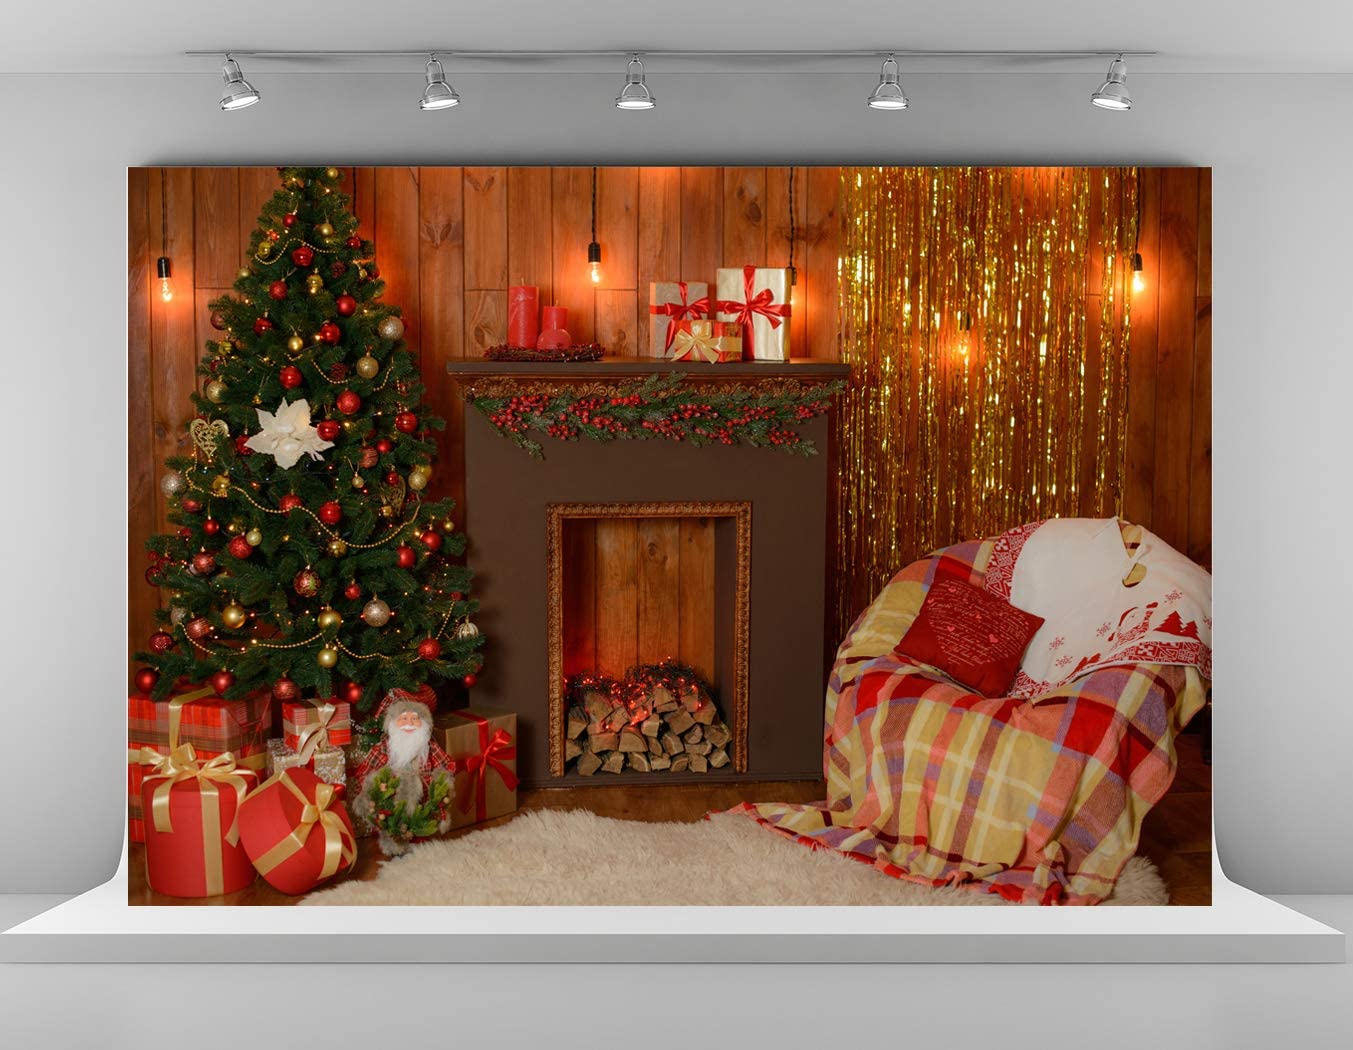 Kate 20x10ft Christmas Fireplace Photography Backdrops Xmas Tree Backdrop Presents Gifts Decoration Backgrounds Brown Wooden Wall Background for Photoshoot